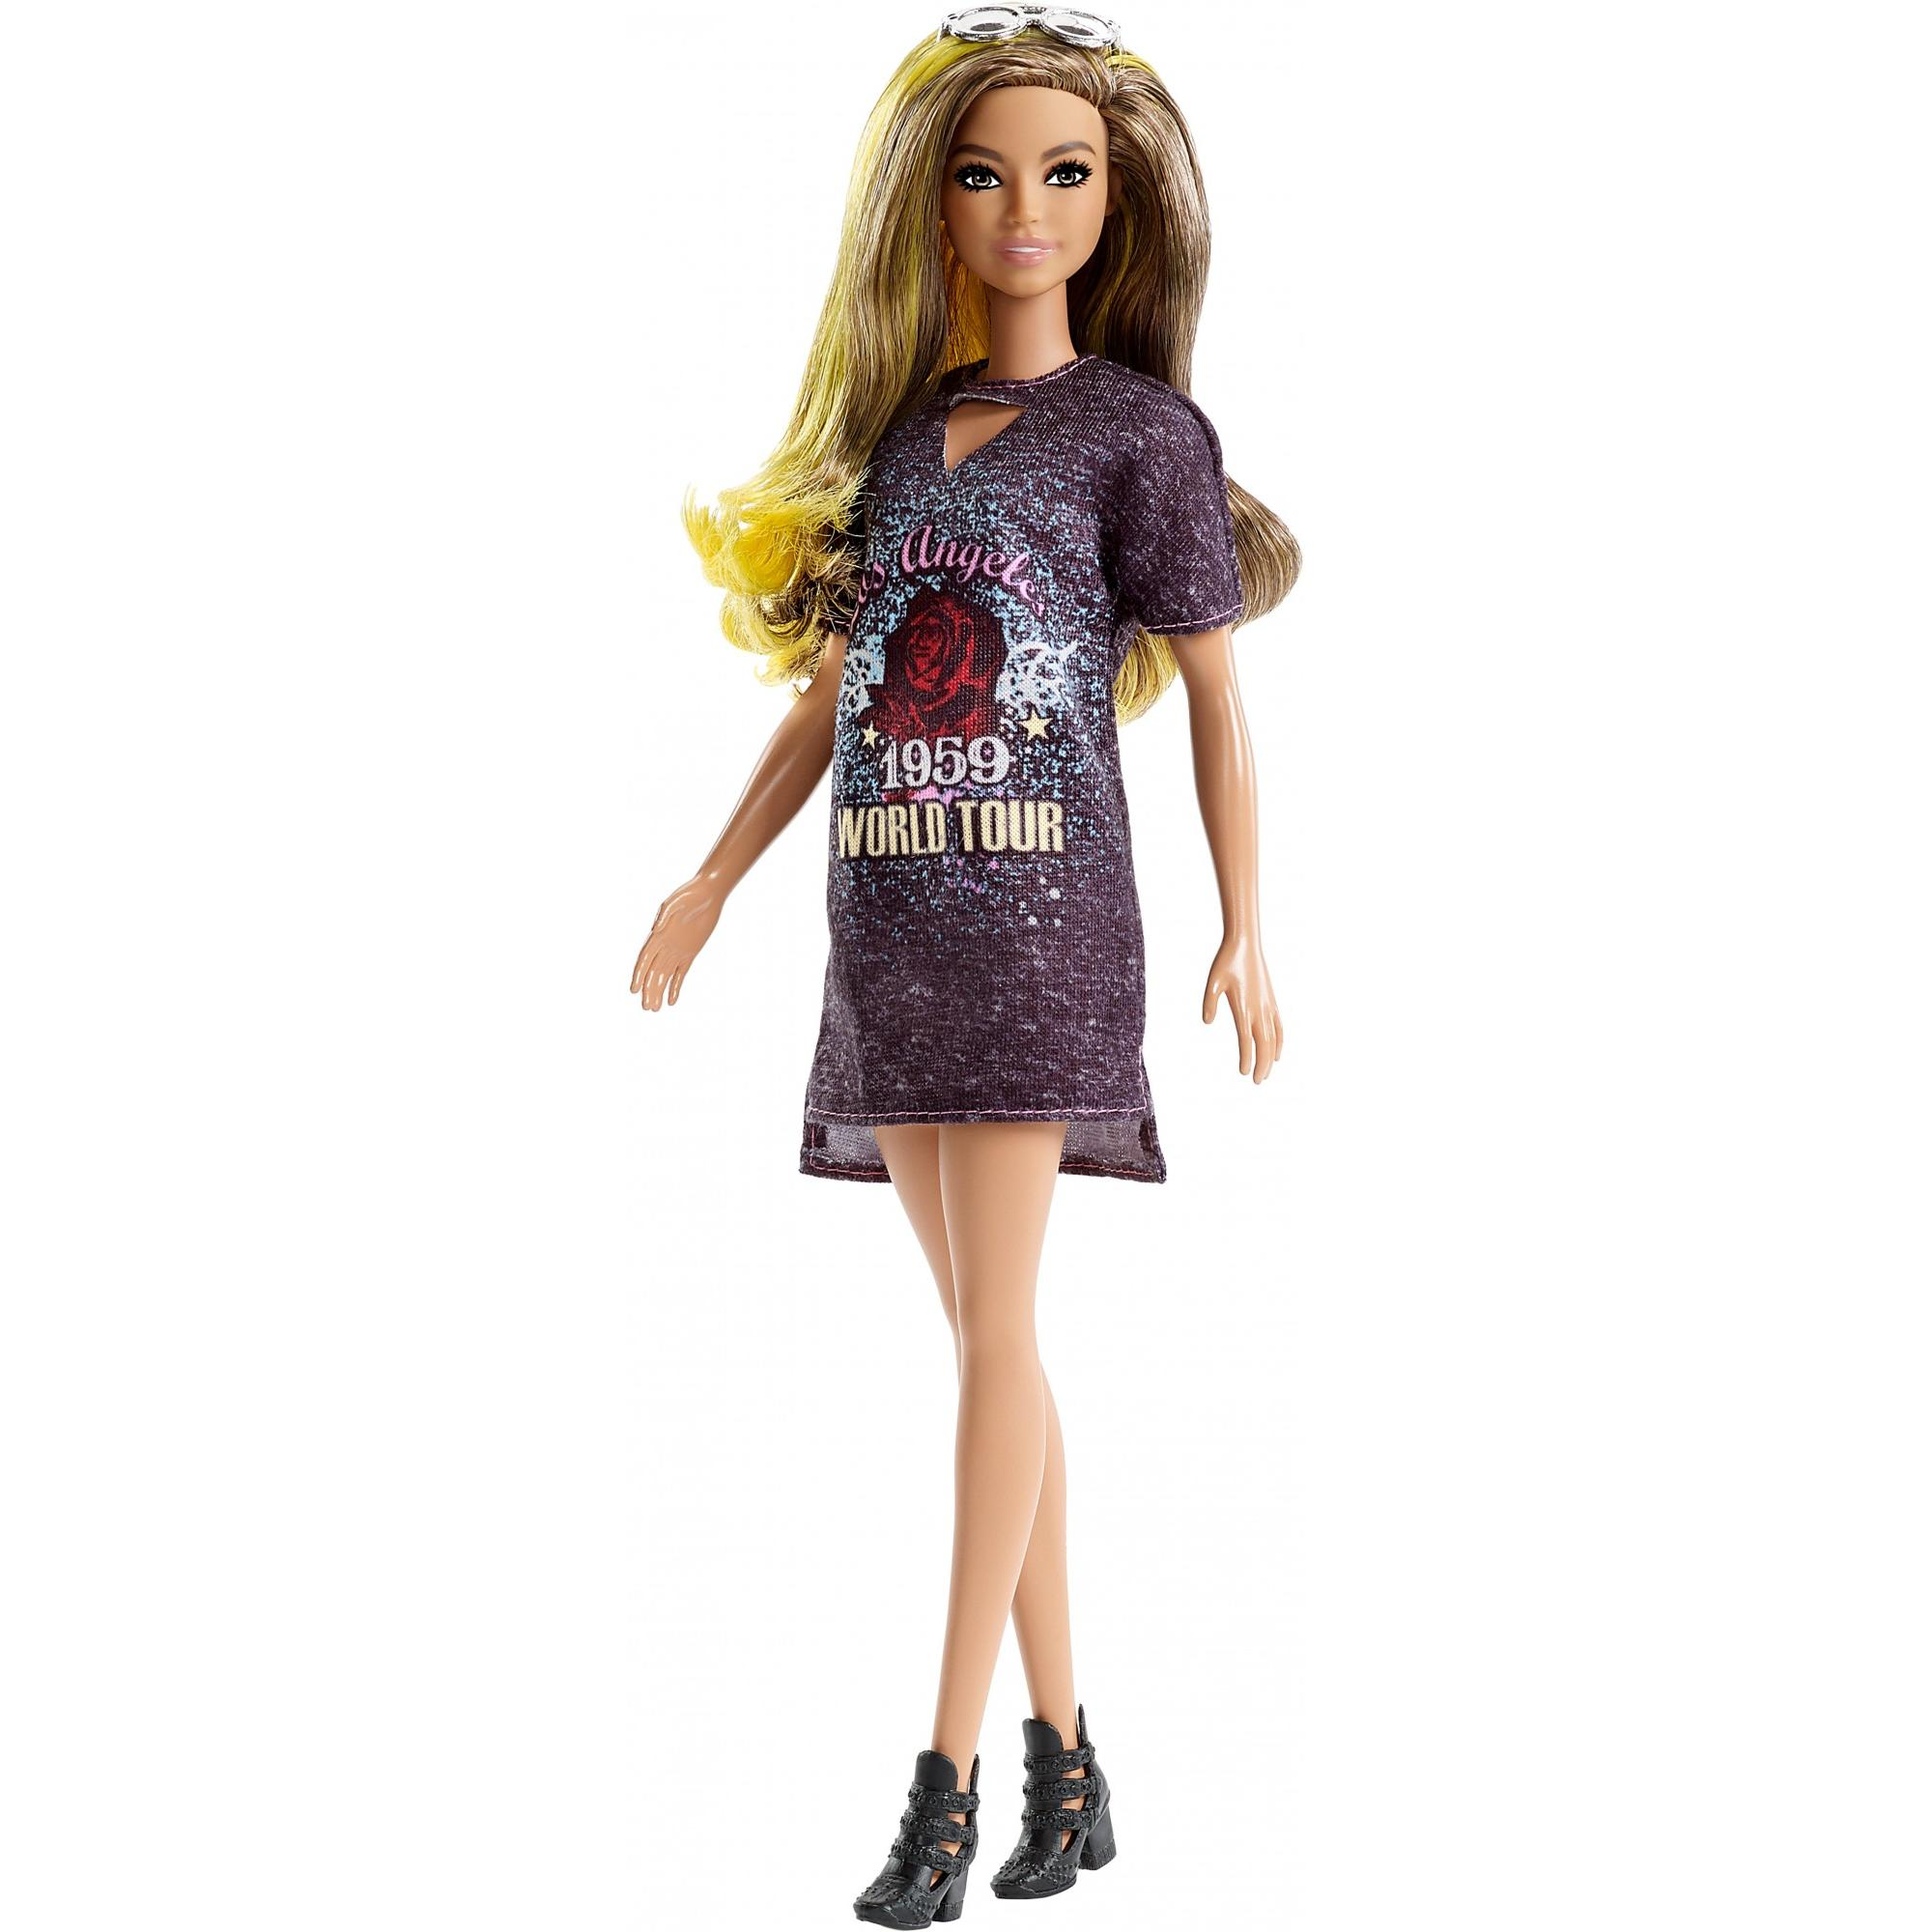 Barbie Fashionistas Doll 87, Ombre Hair by Mattel